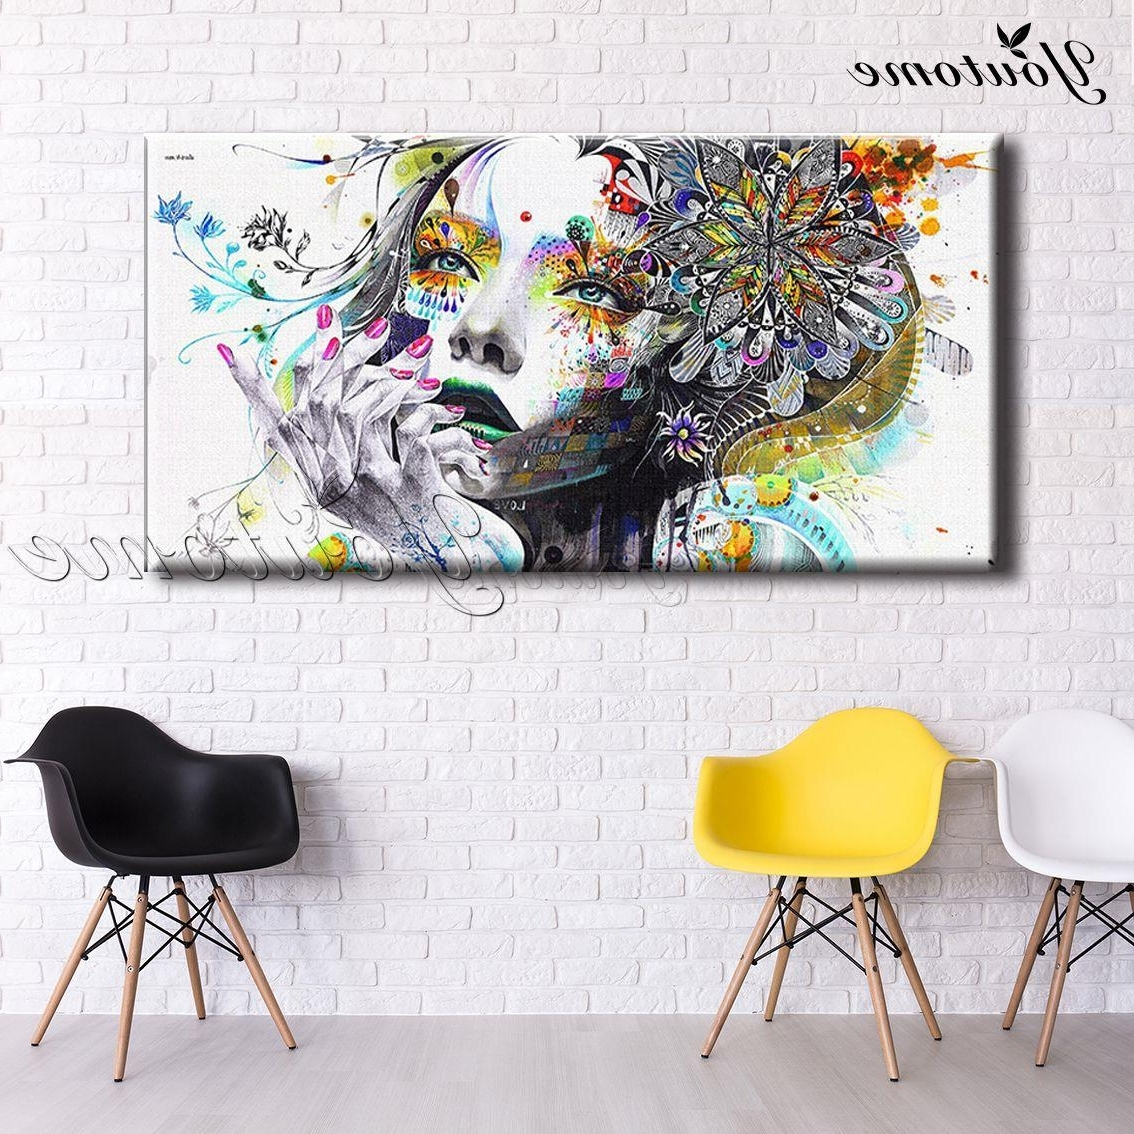 Trendy Wall Art Fabric Prints In Psychedelic Fabric Girl Modern Wall Art Girl With Flowers Painting (View 9 of 15)